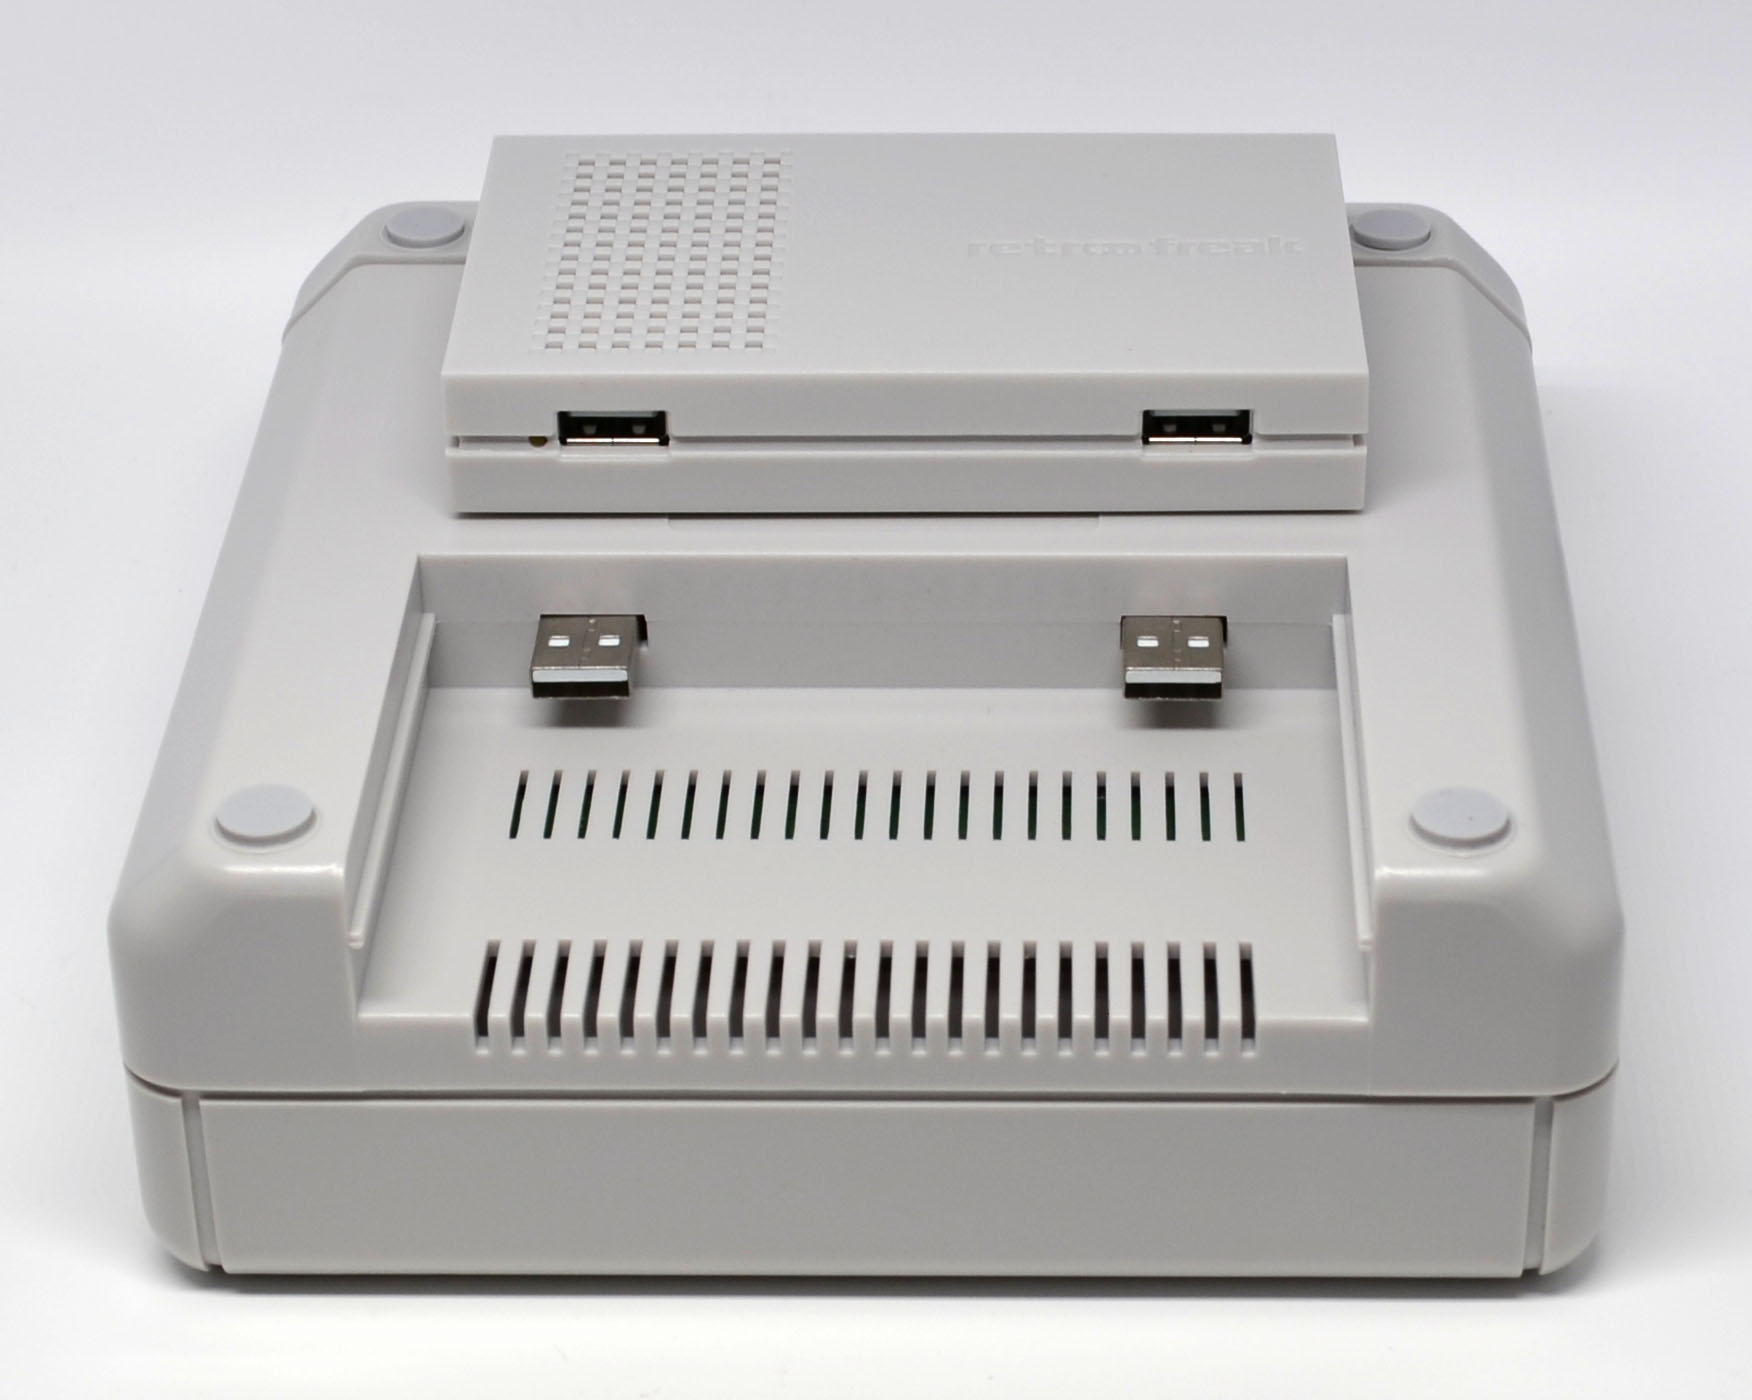 The main part of the console sitting on top of the bottom of the cartridge unit.